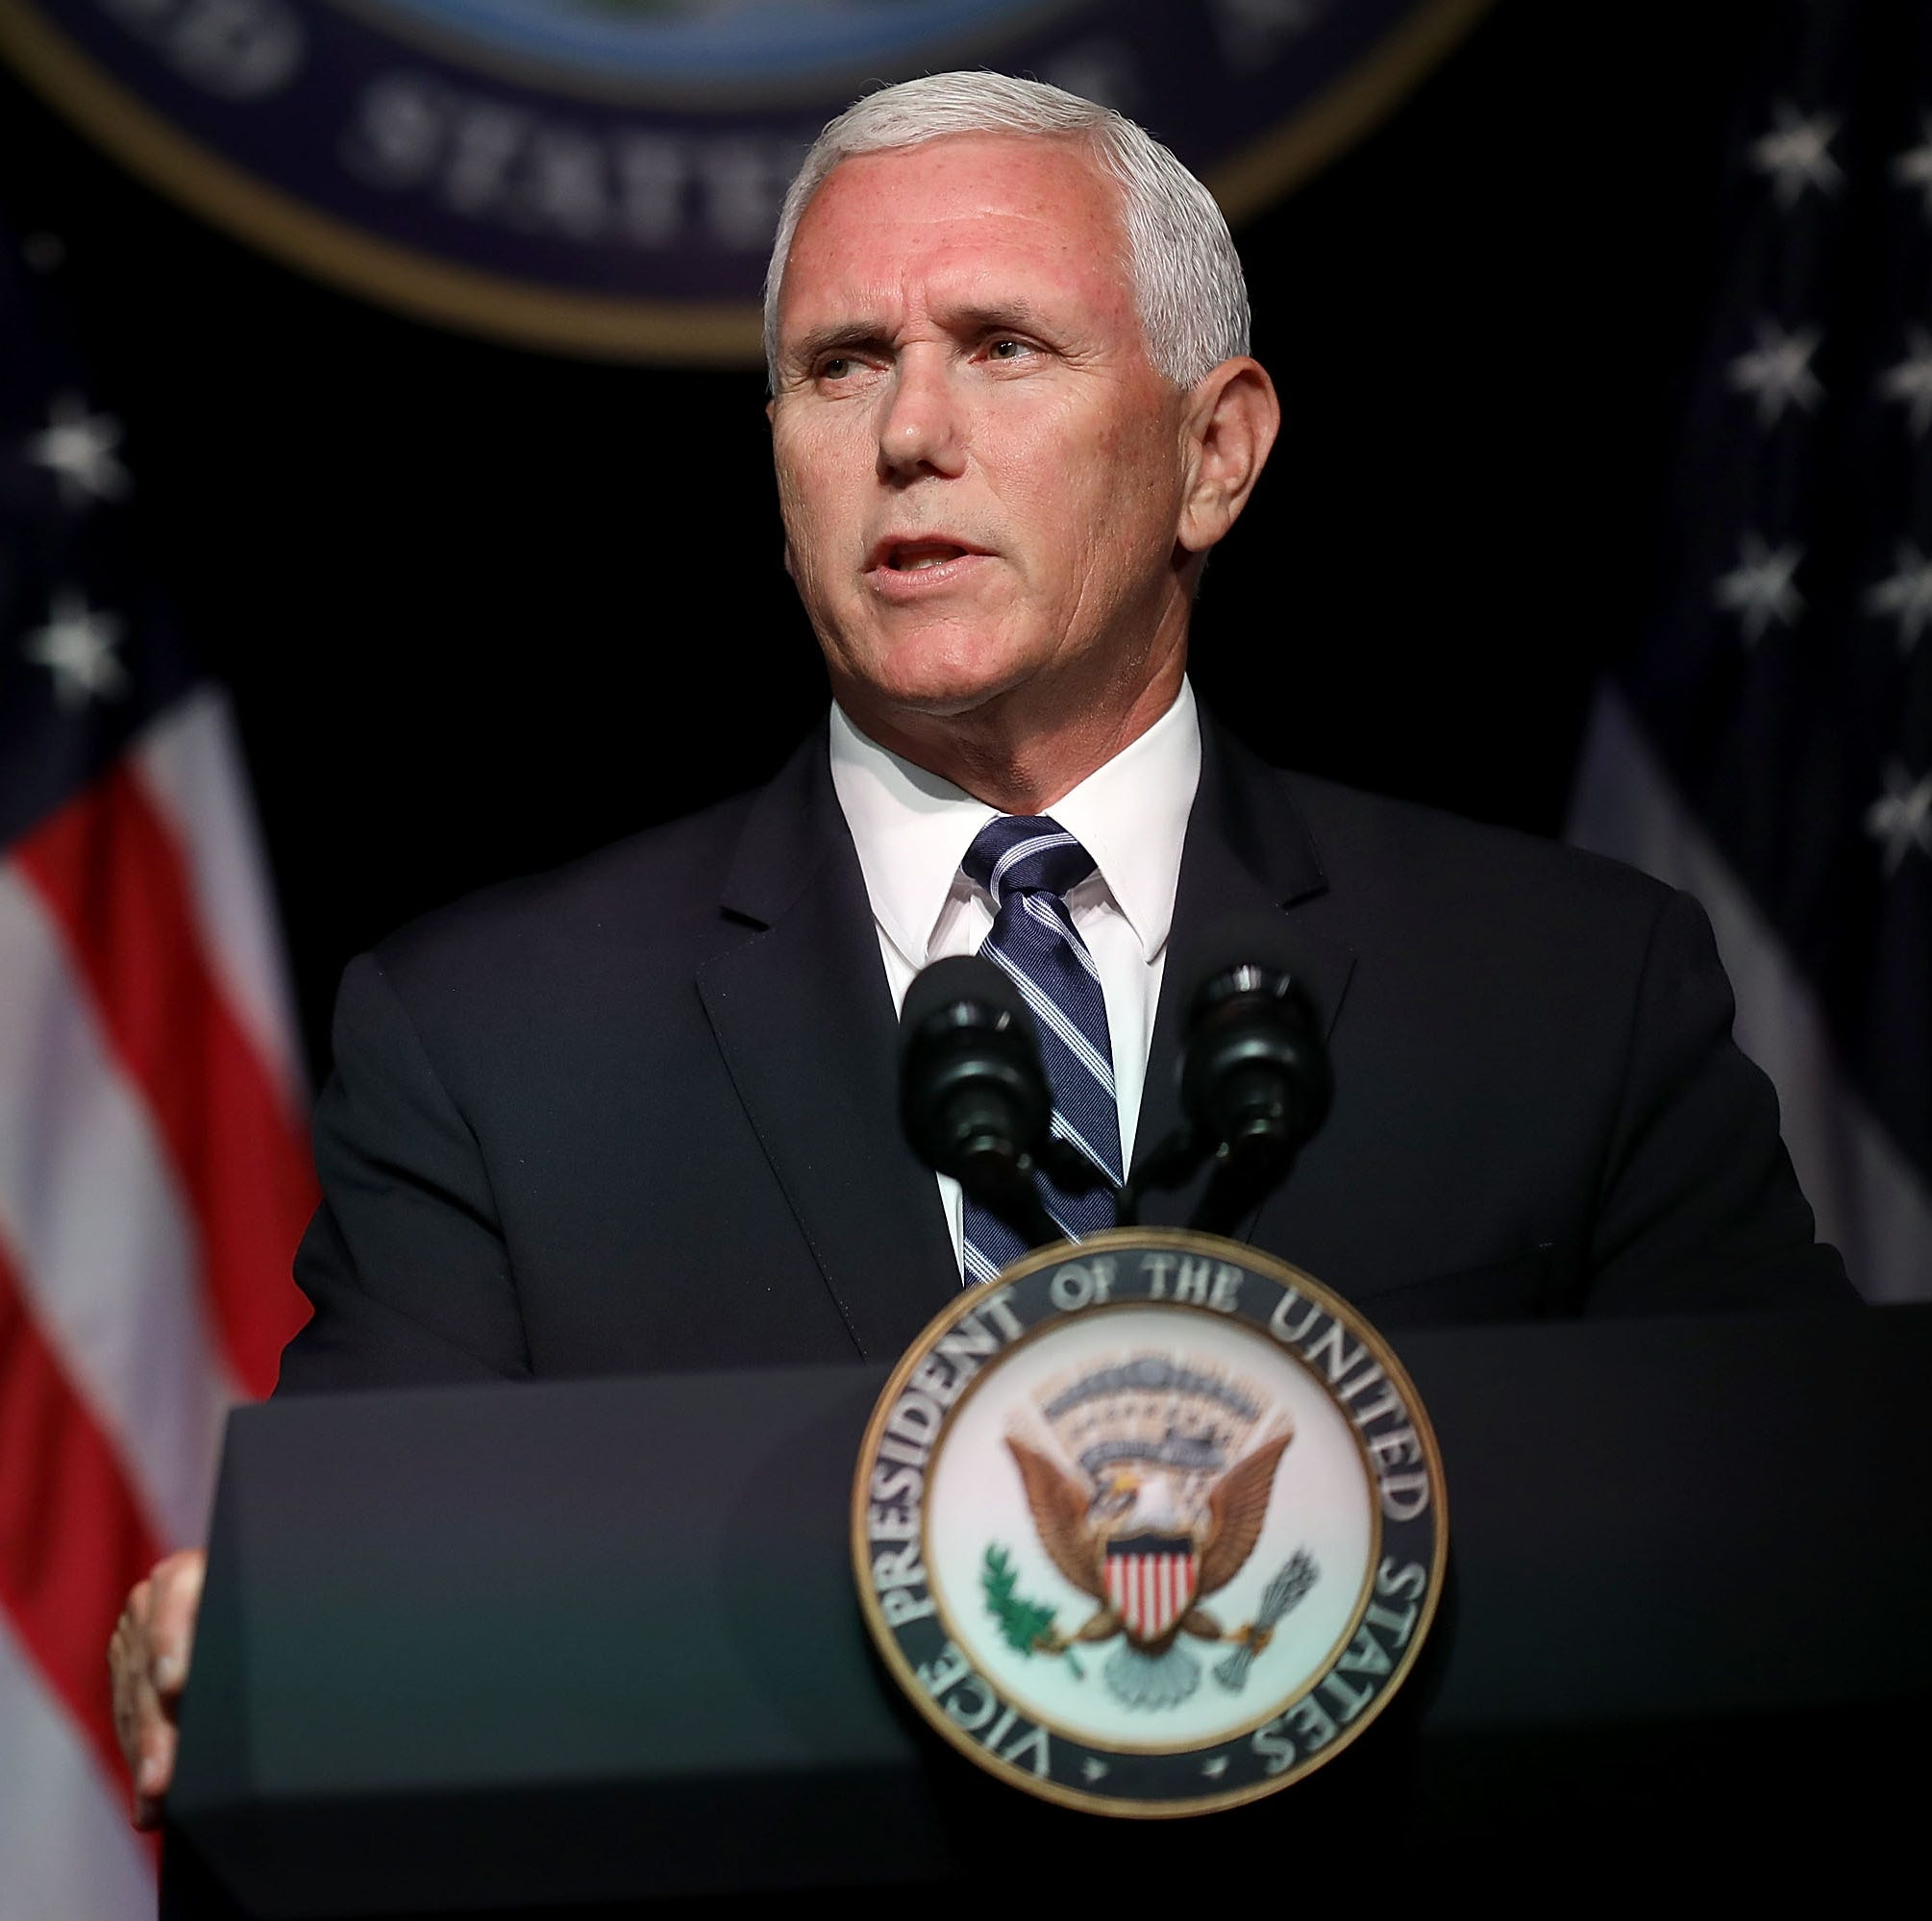 Mike Pence: 'Space Force is an idea whose time has come'